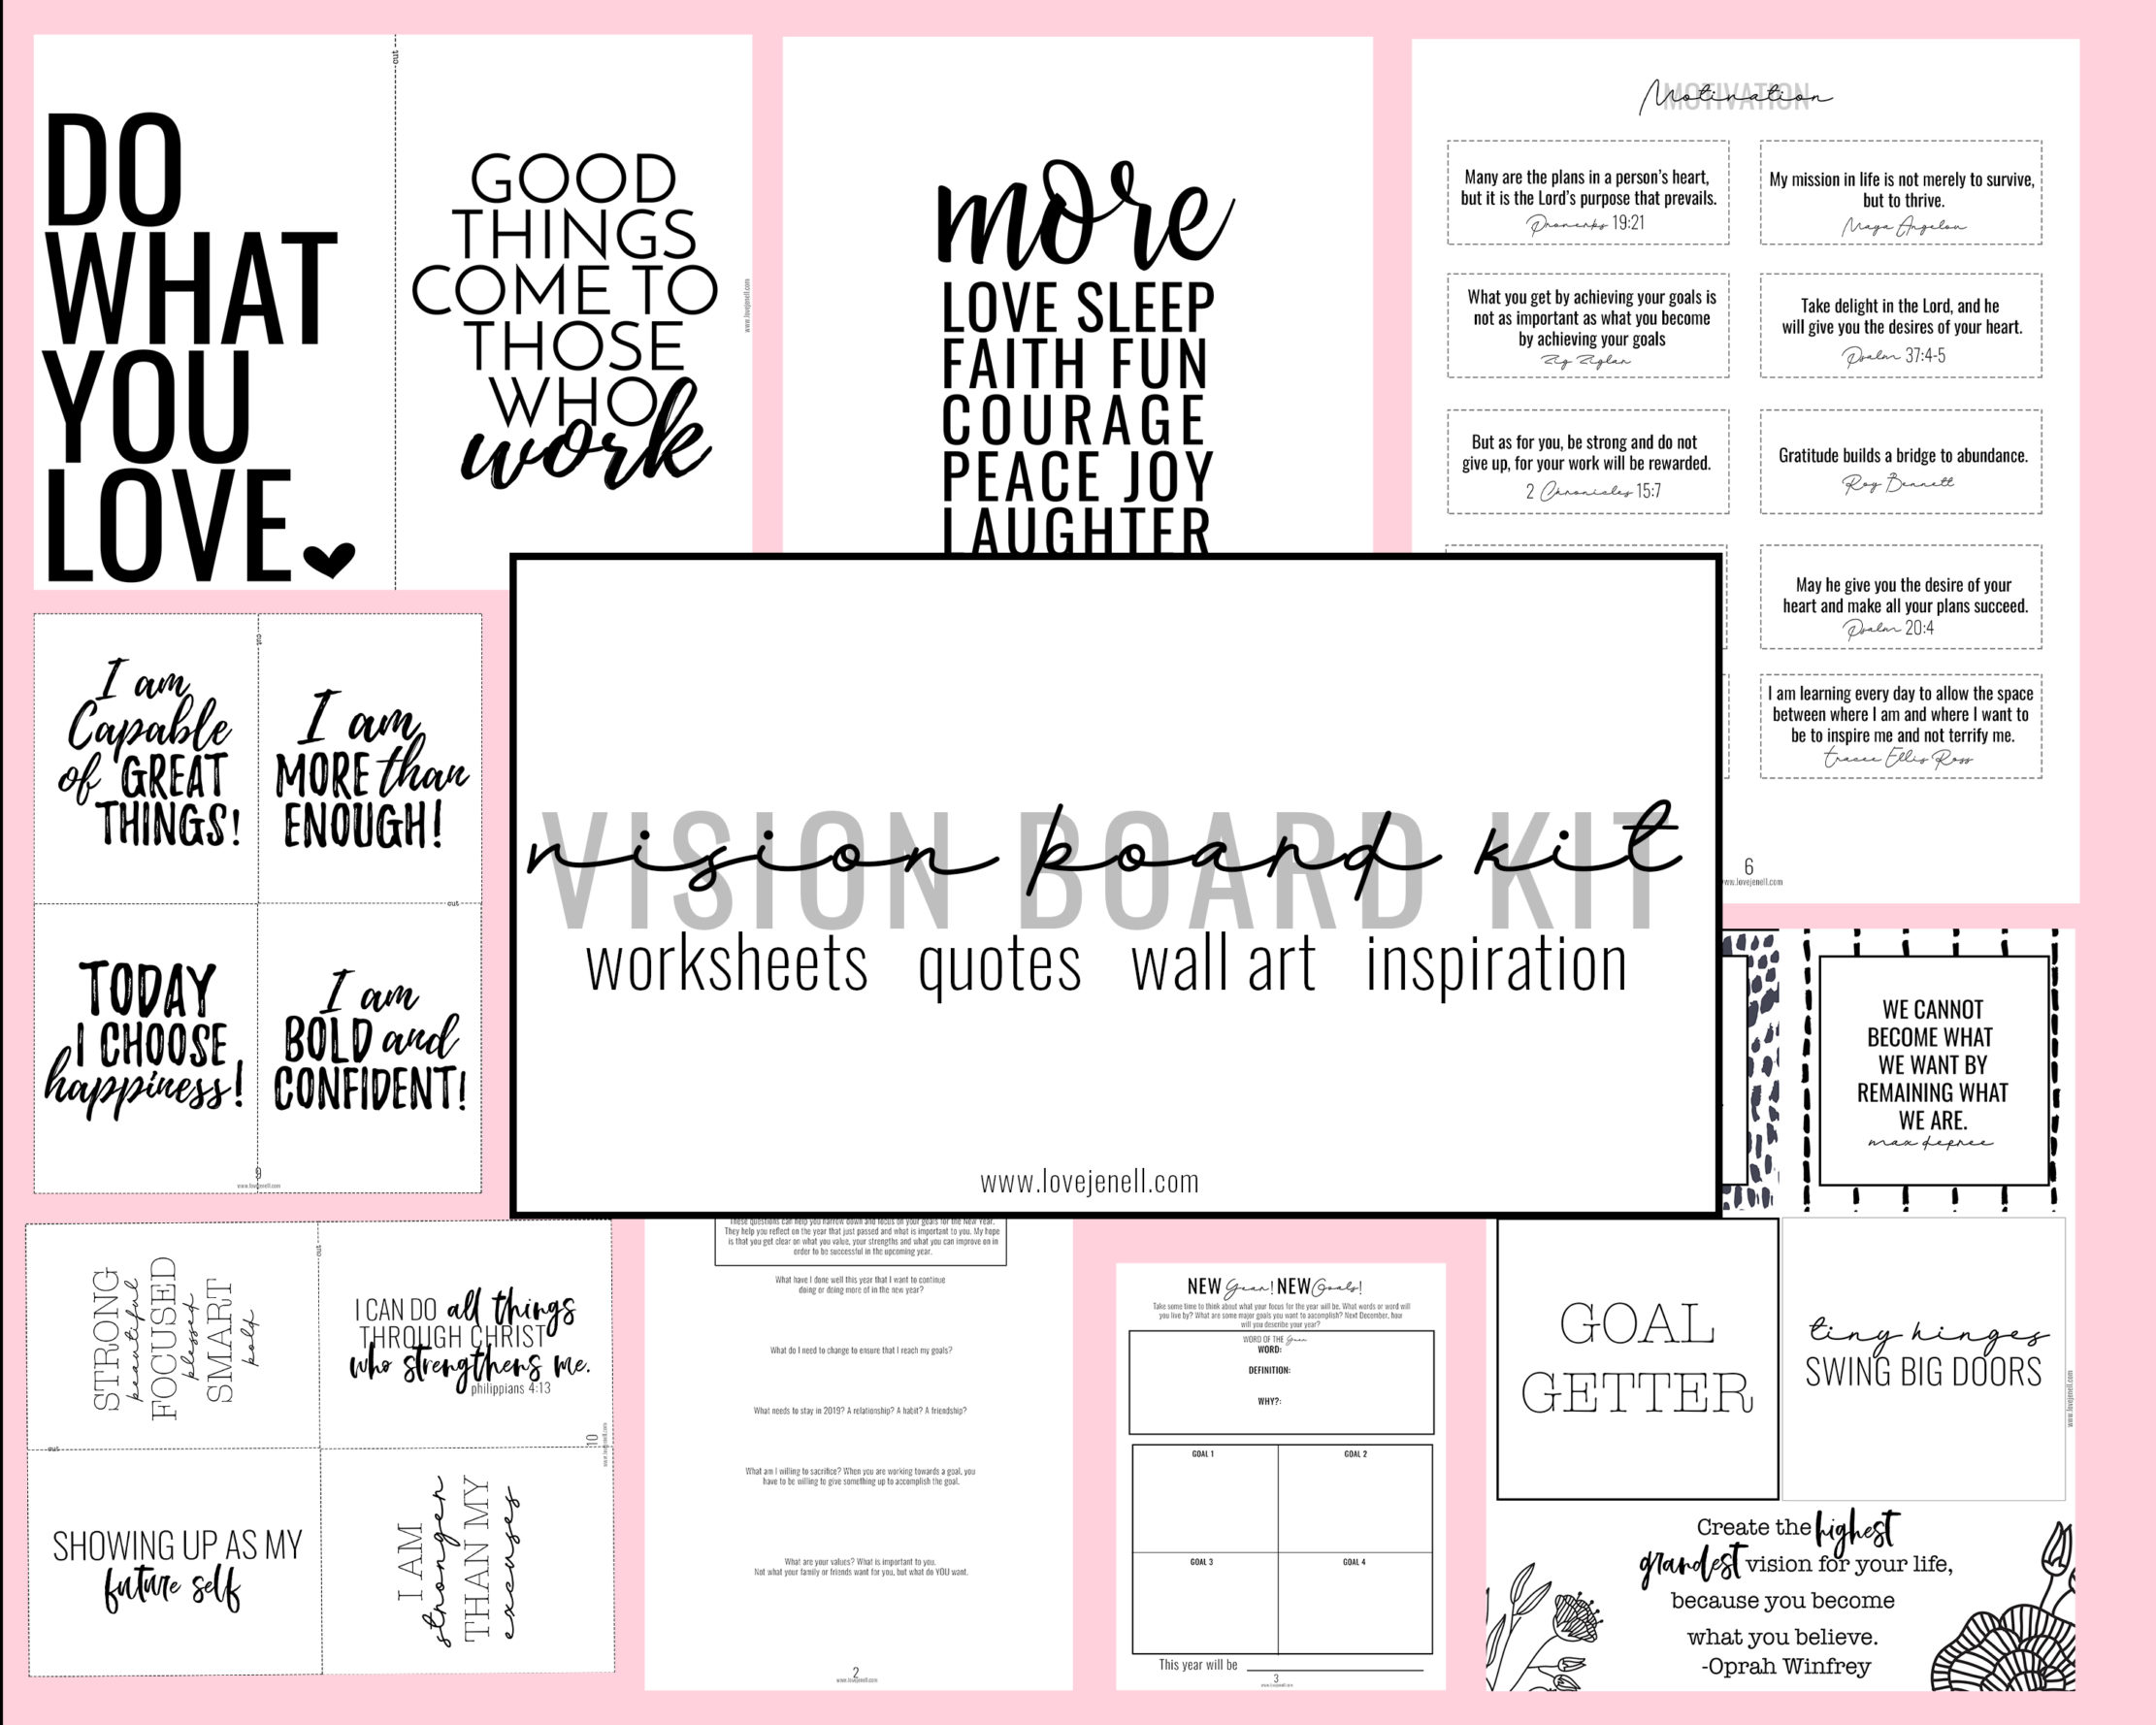 Reflection Free Vision Board Printable